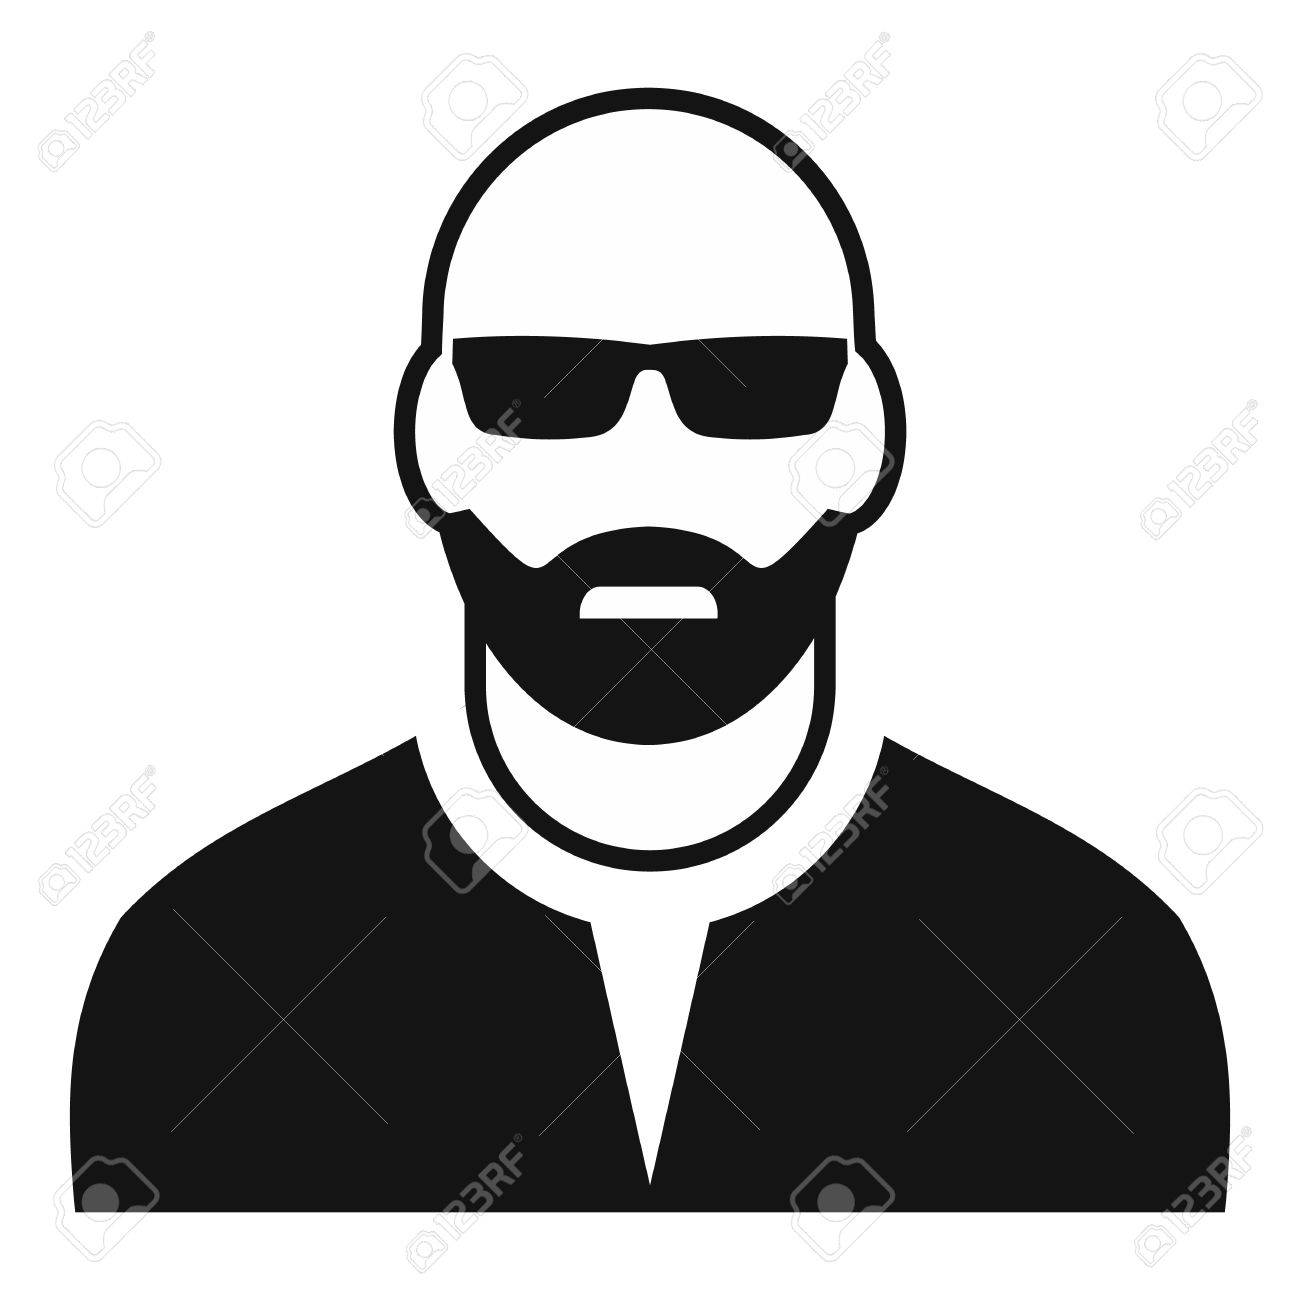 man with glasses avatar simple icon for web and mobile devices